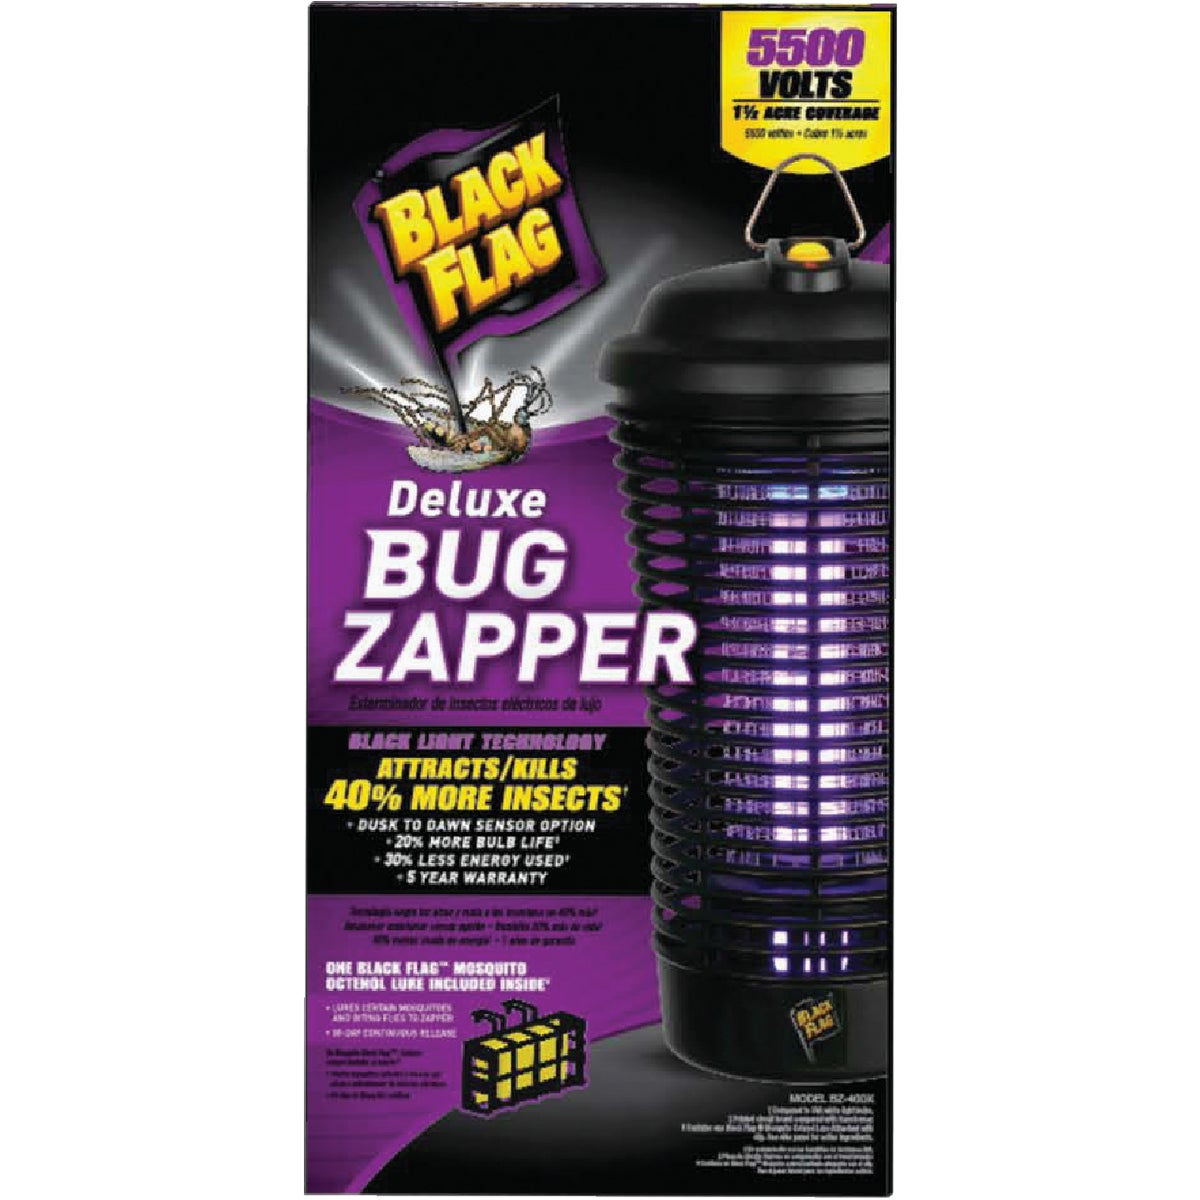 1.5 ACRE ULTRA BUG KILLR - BK300 by Kaz